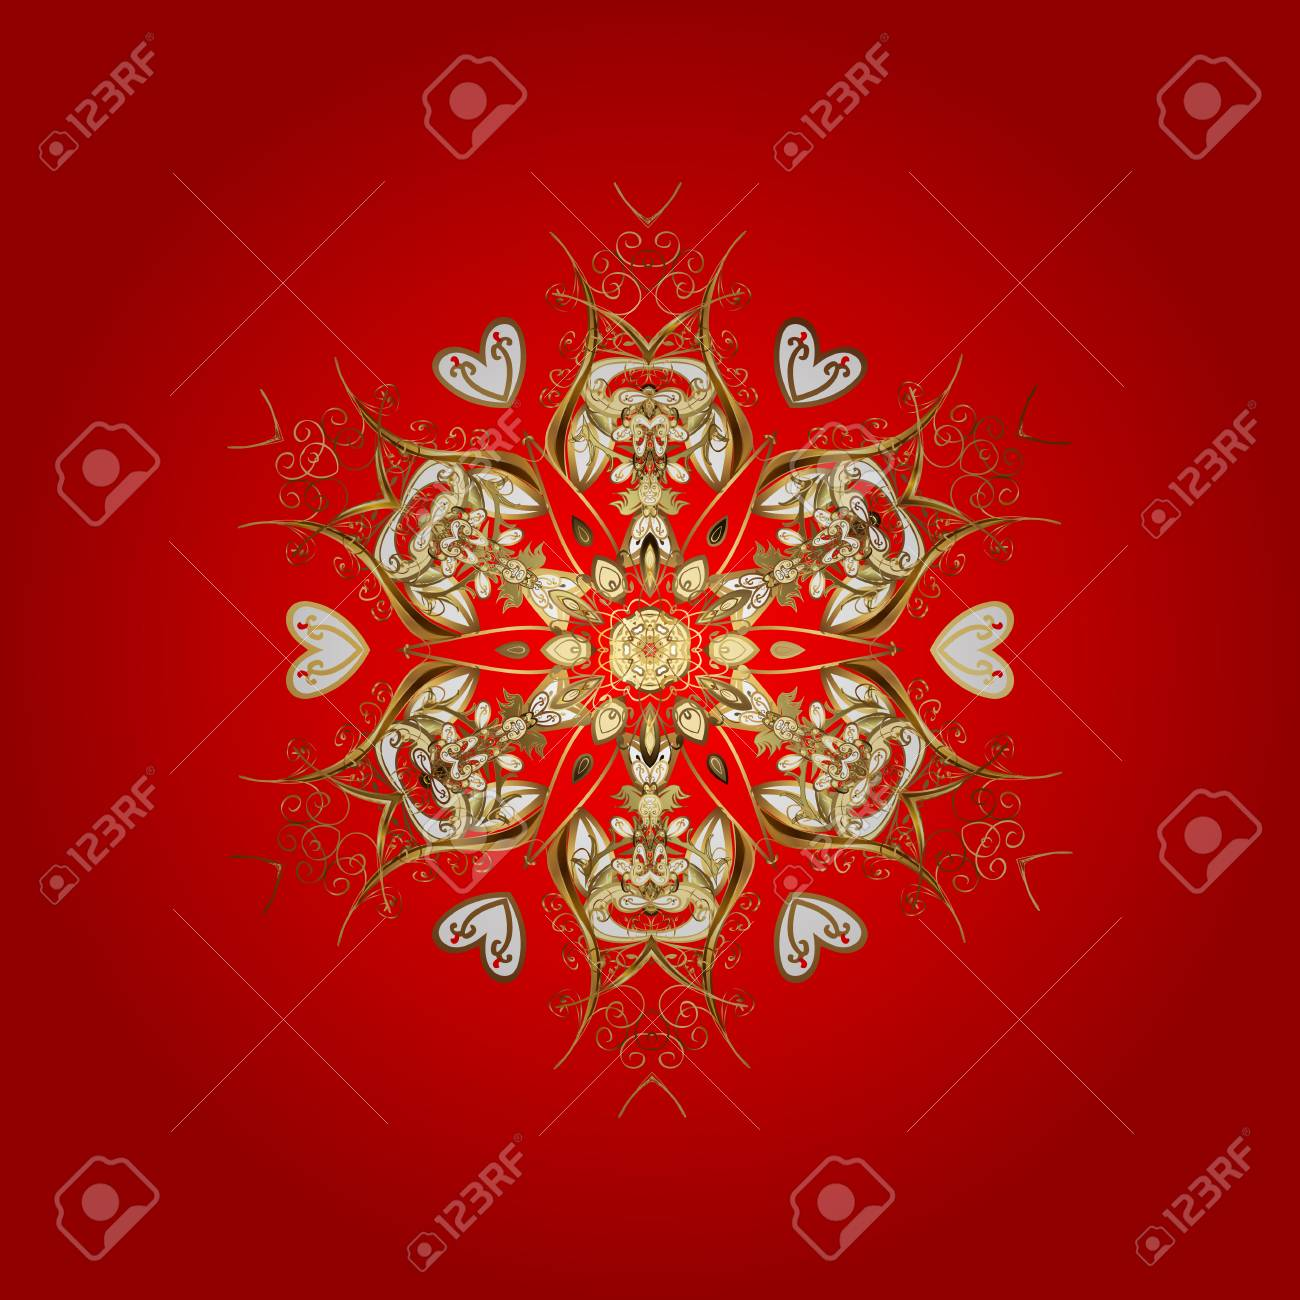 Design. Stock vector illustration falling snow. Golden snowflakes, snowfall, stylized snow on red background. - 80572412